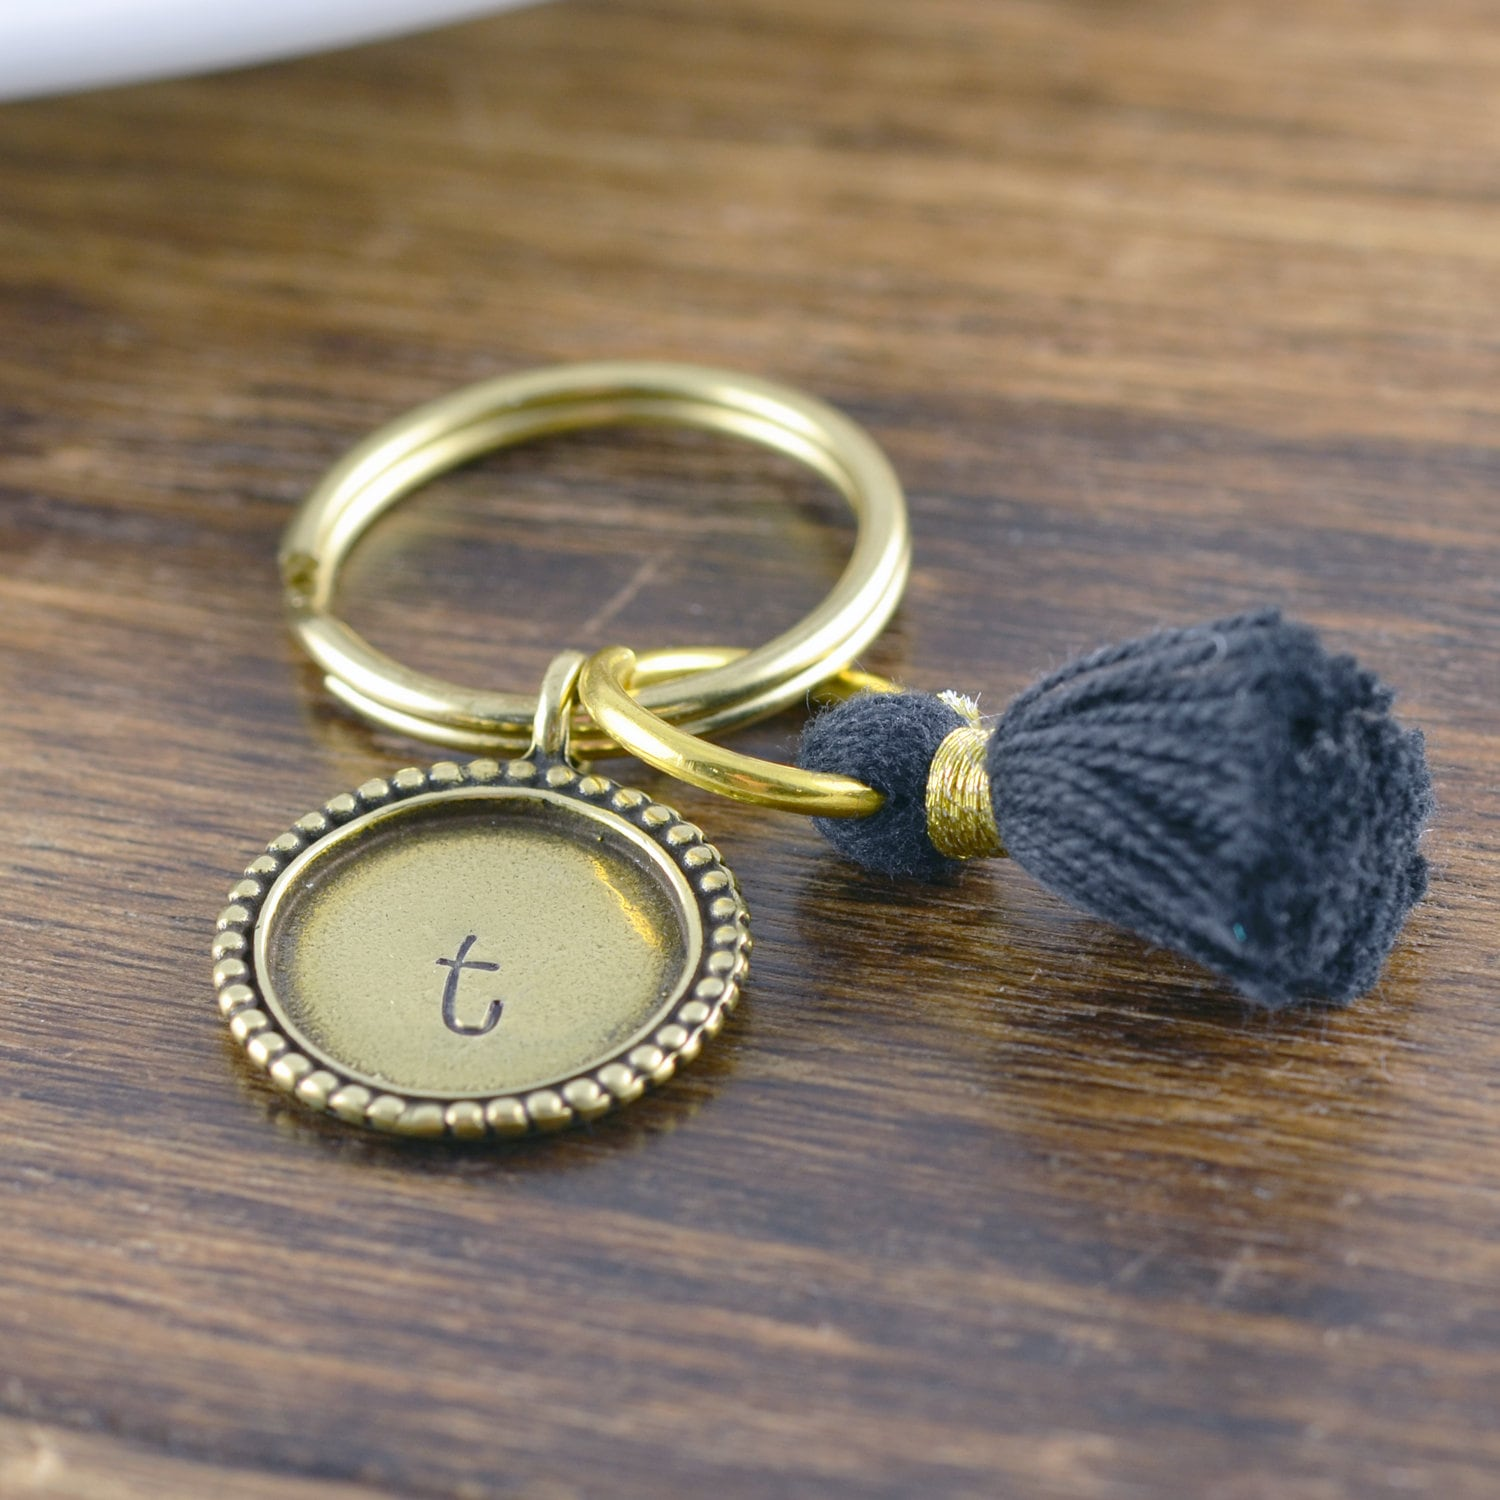 Personalized Keychain, Gift Women, Personalized Gift